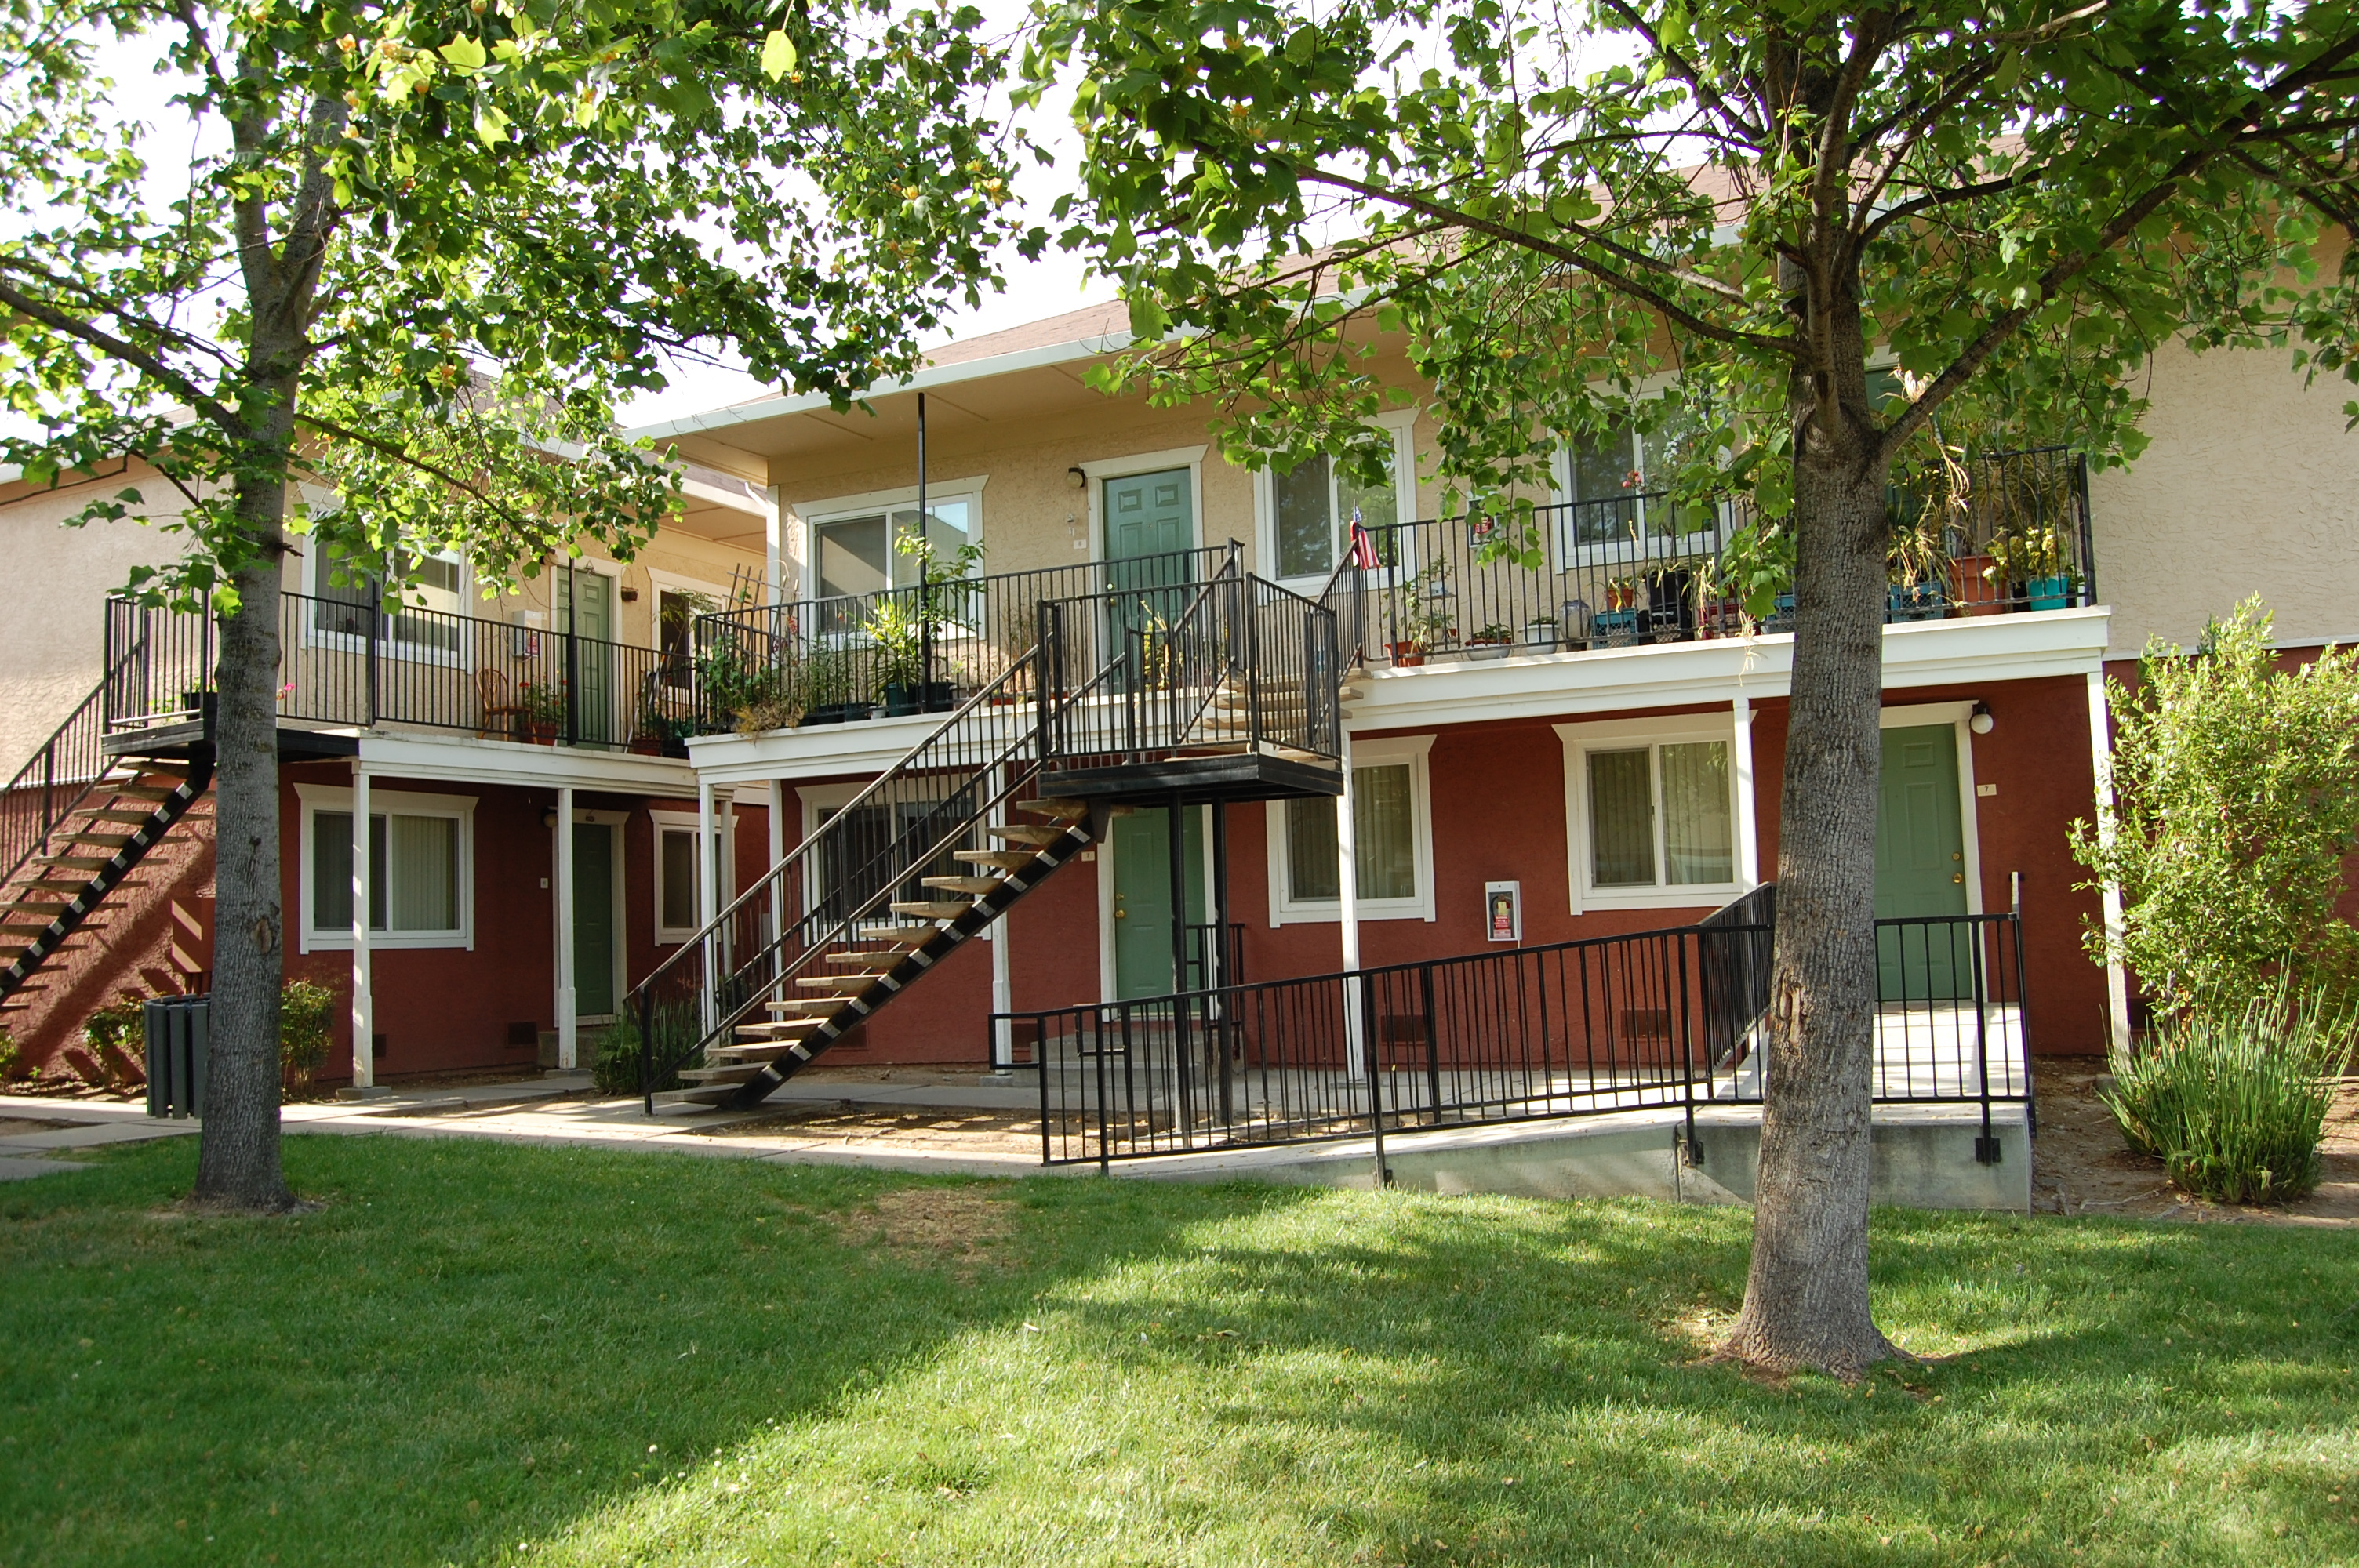 Cheap 2 bedroom apartments in sacramento ca - Cheap one bedroom apartments in california ...